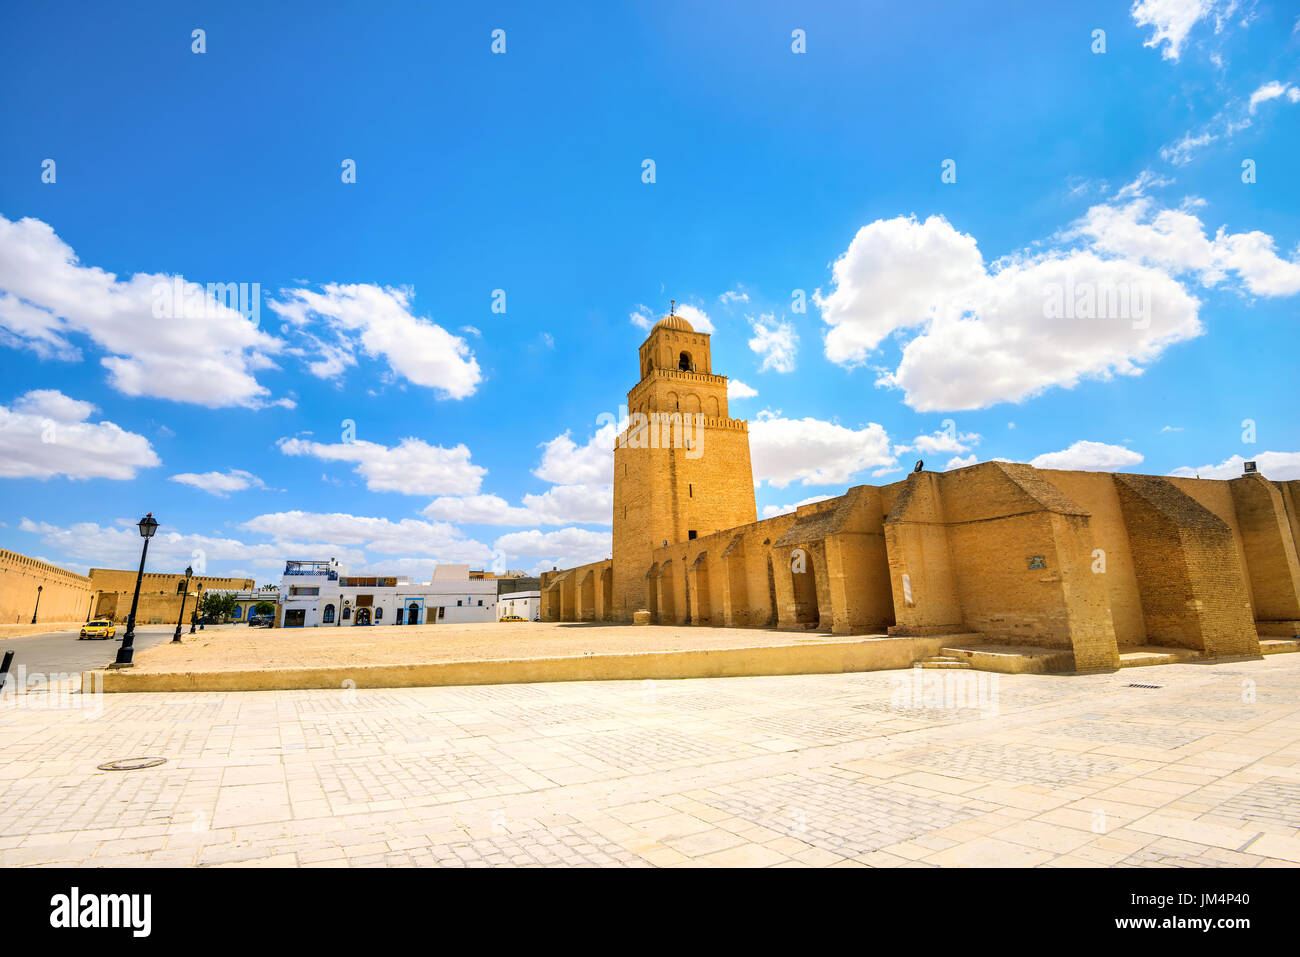 View of Great Mosque in Kairouan. Tunisia, North Africa - Stock Image